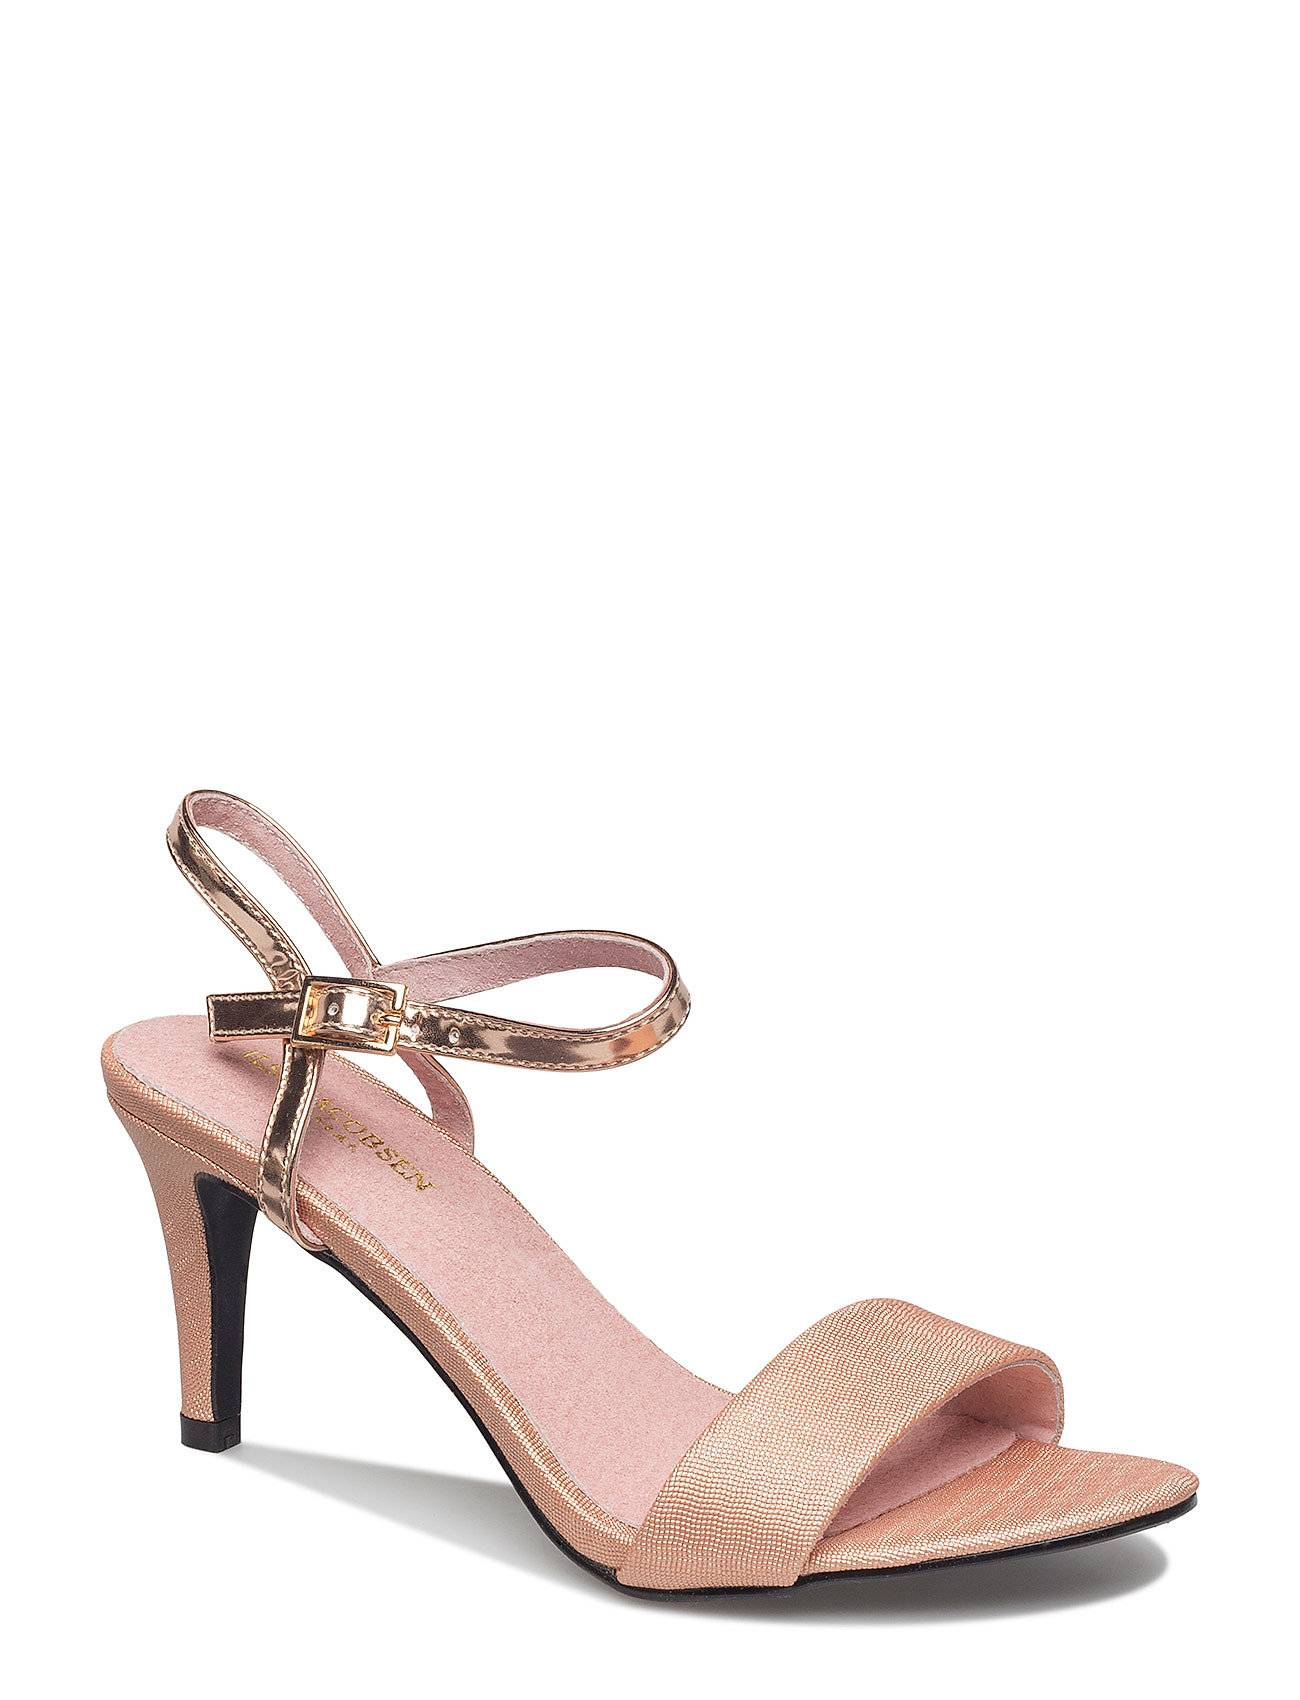 Ilse Jacobsen Pumps